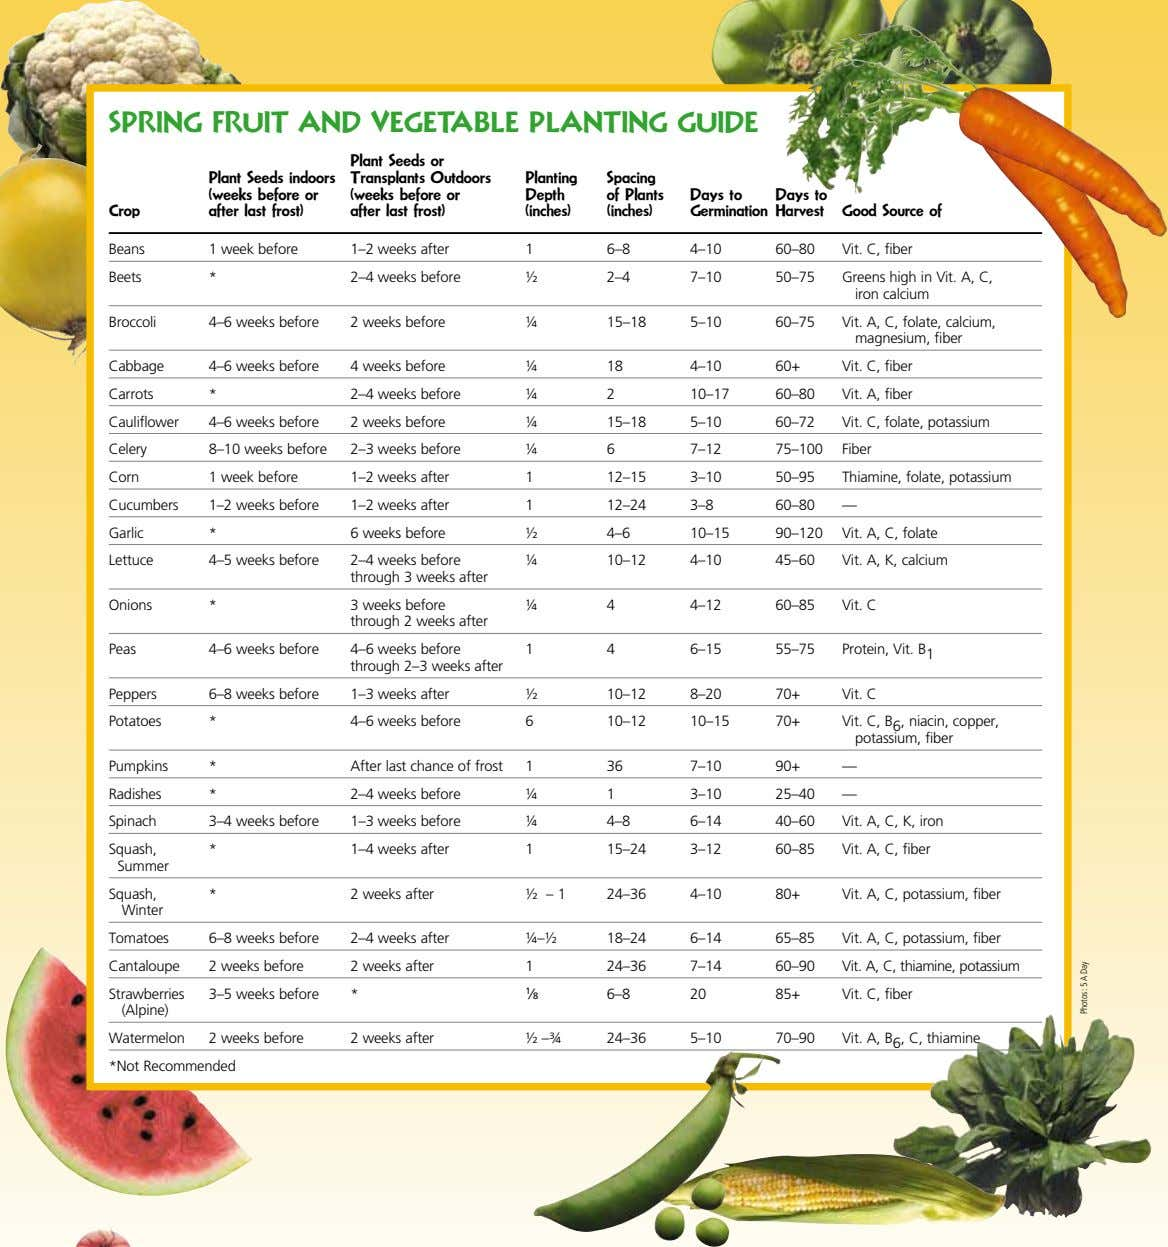 SPRING FRUIT aND VEGETaBLE PLaNTING GUIDE Planting Spacing Depth of Plants Days to Days to